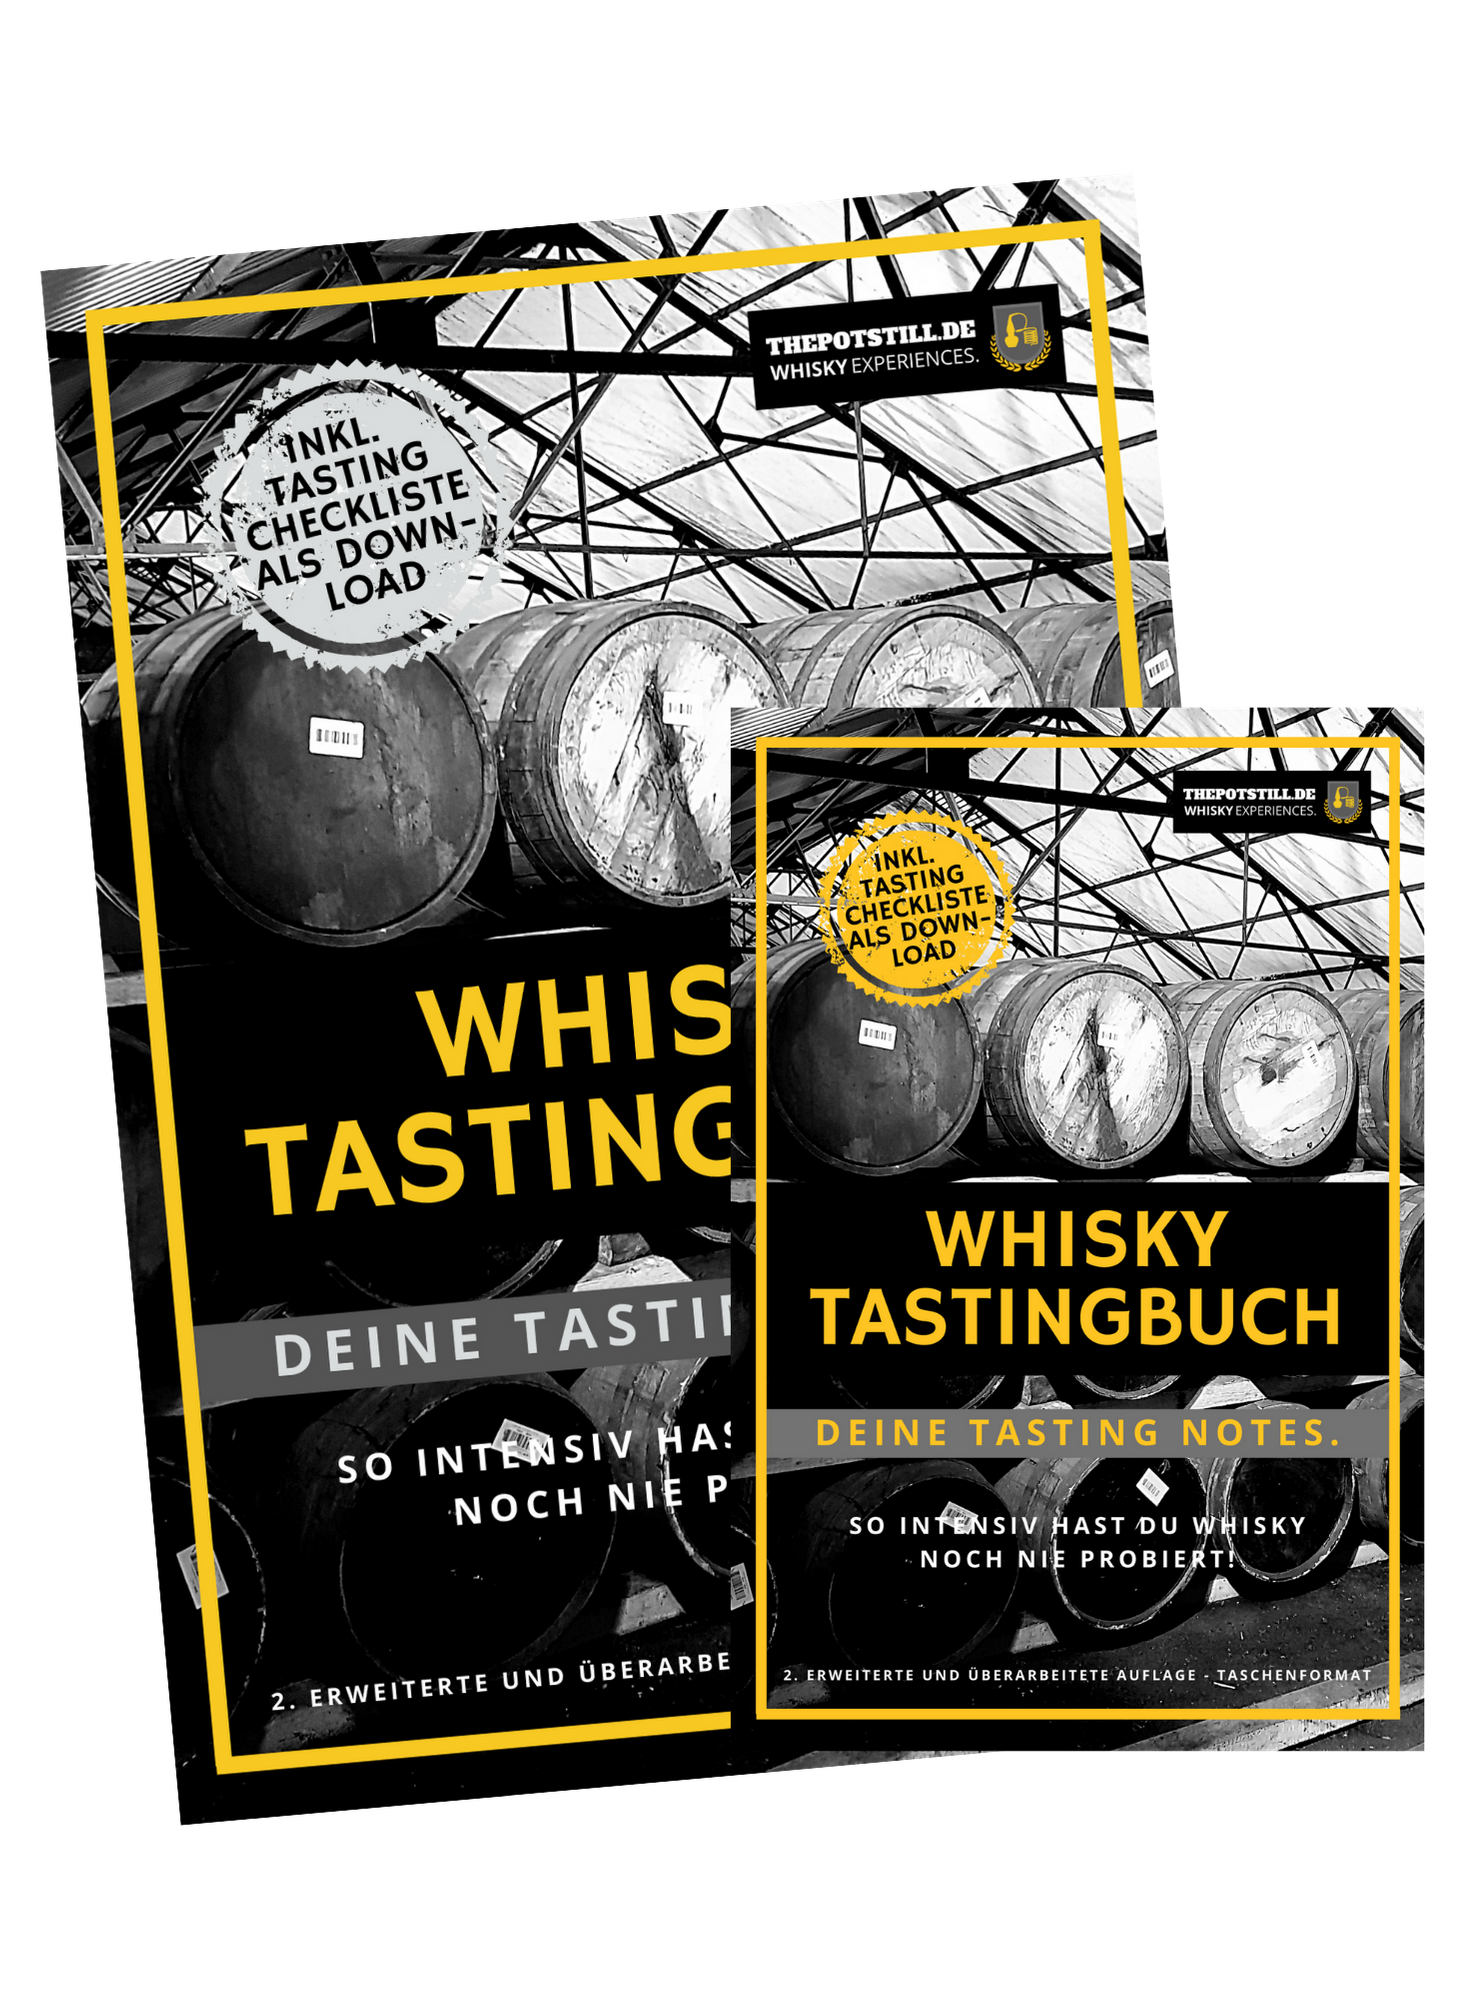 GRATIS: Whisky Tastingbuch. So intensiv hast Du Whisky noch nie probiert! - The Pot Still